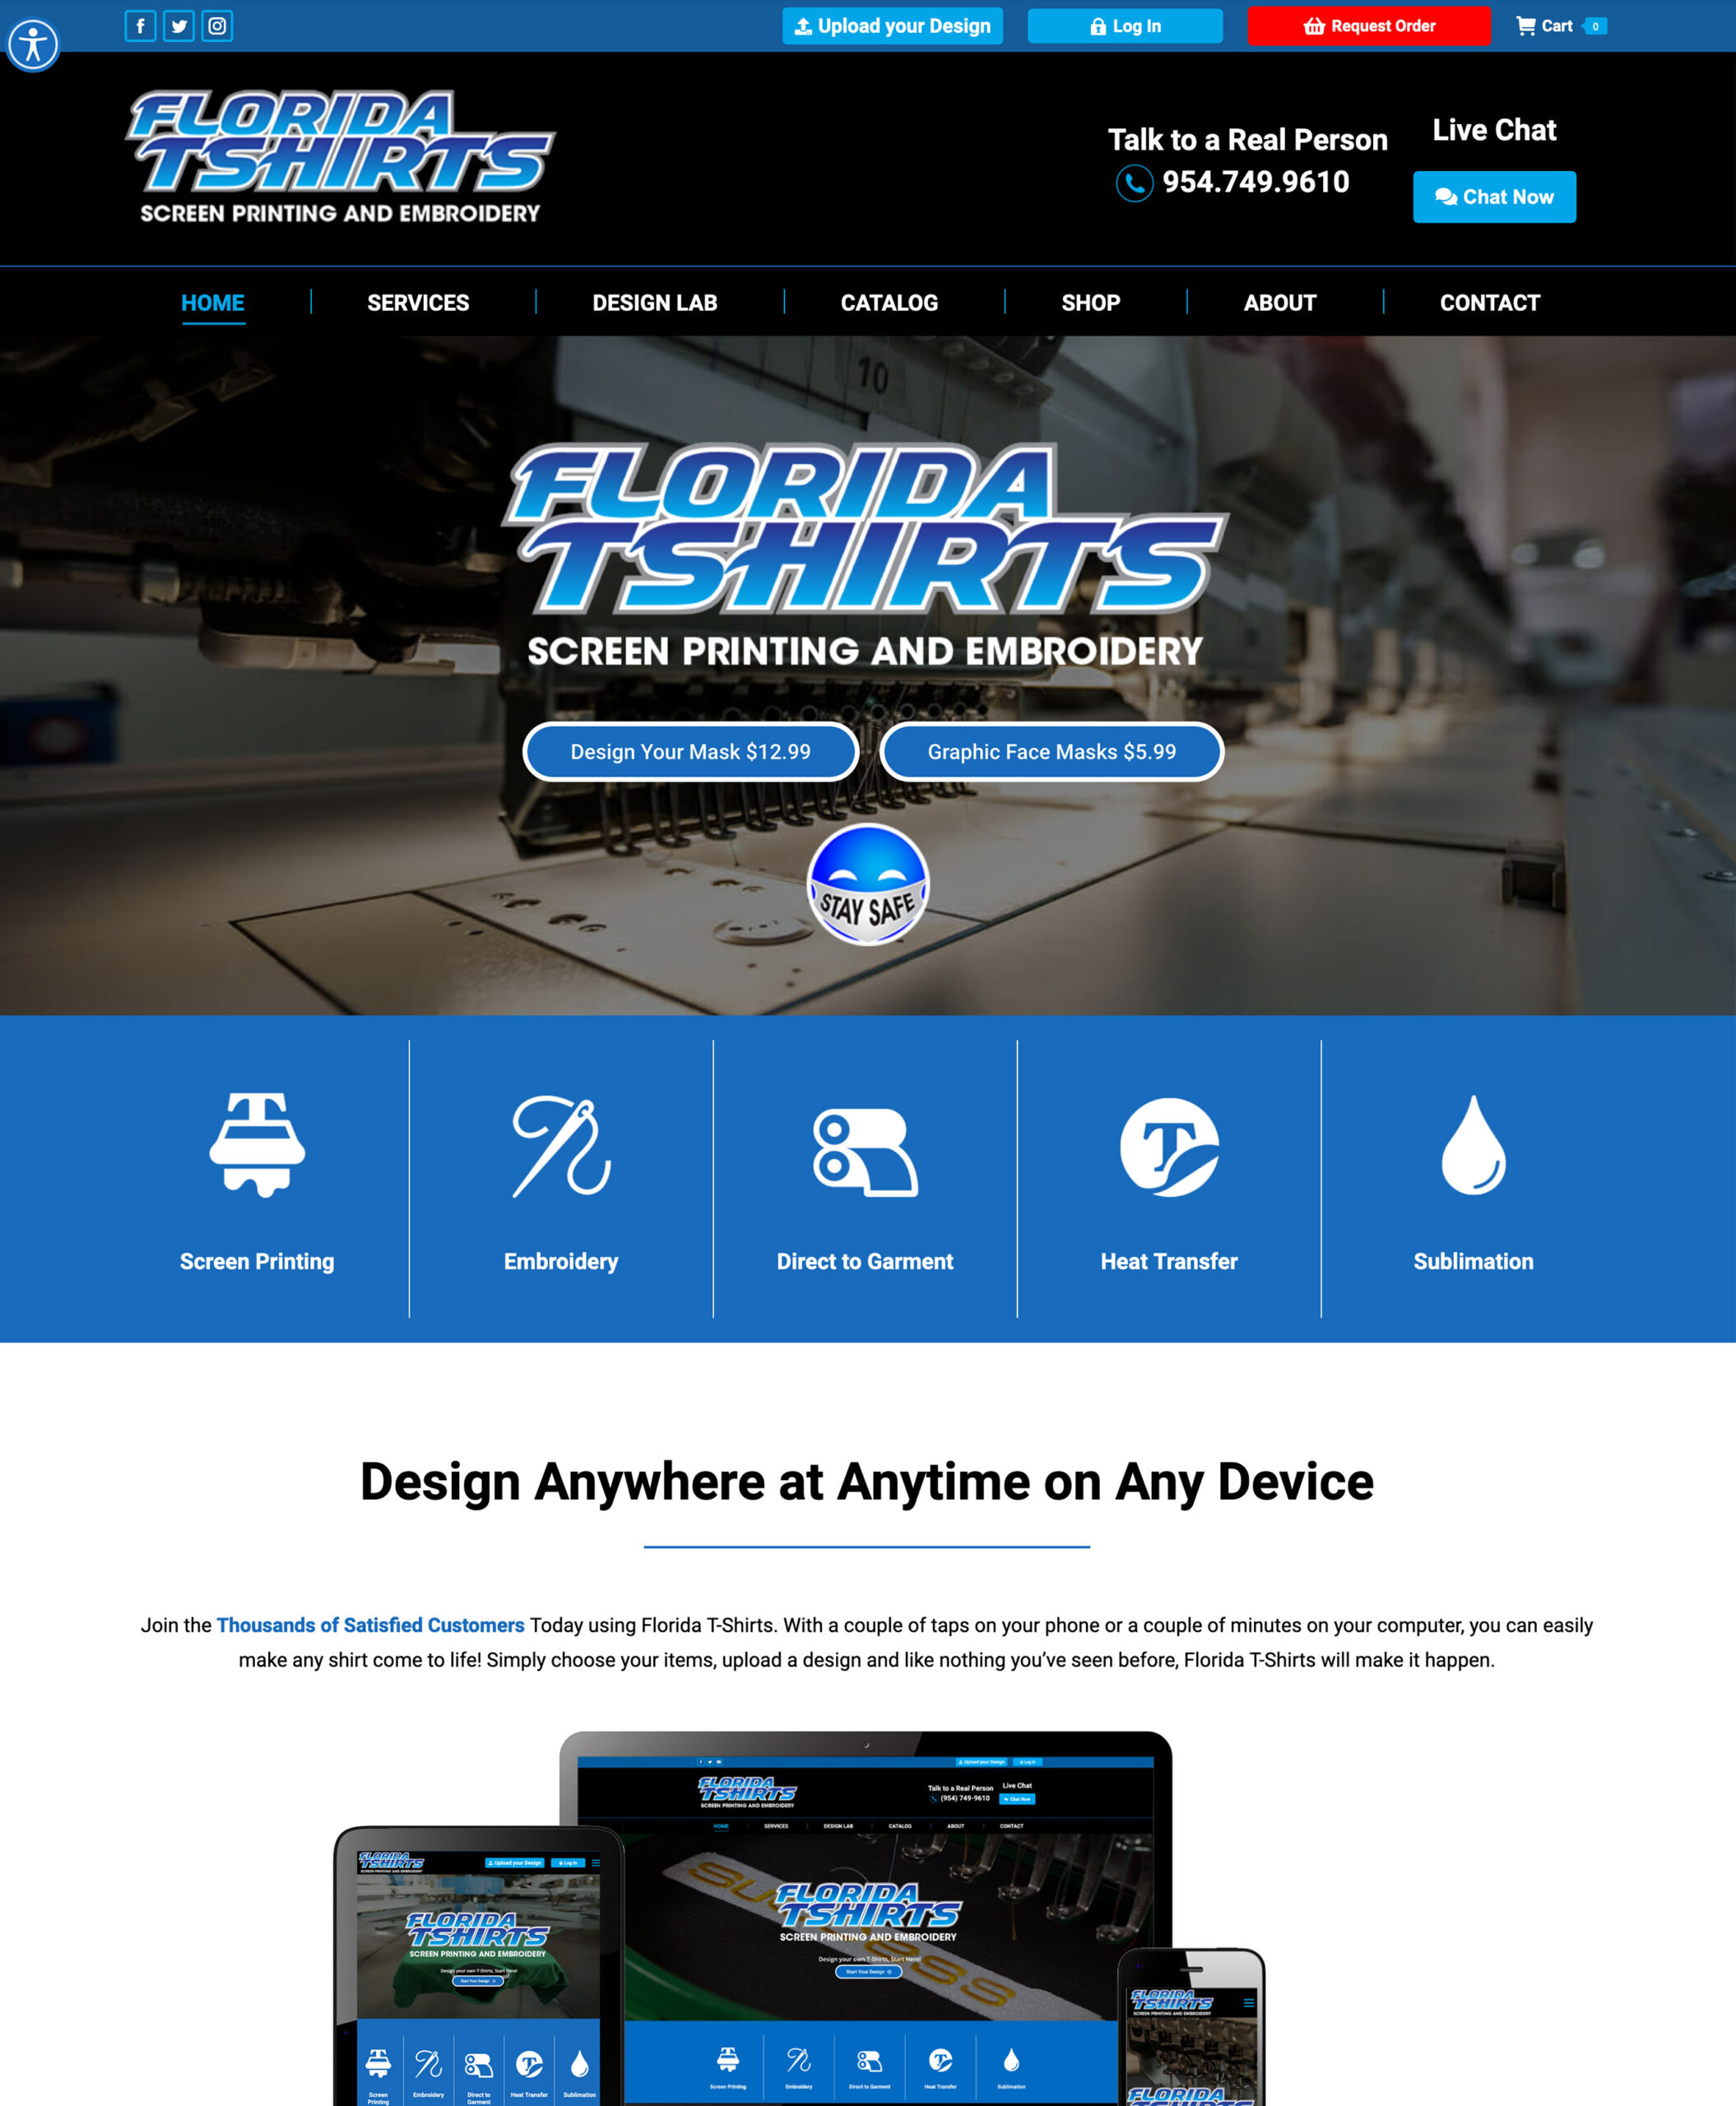 FlTshirts-Home Page